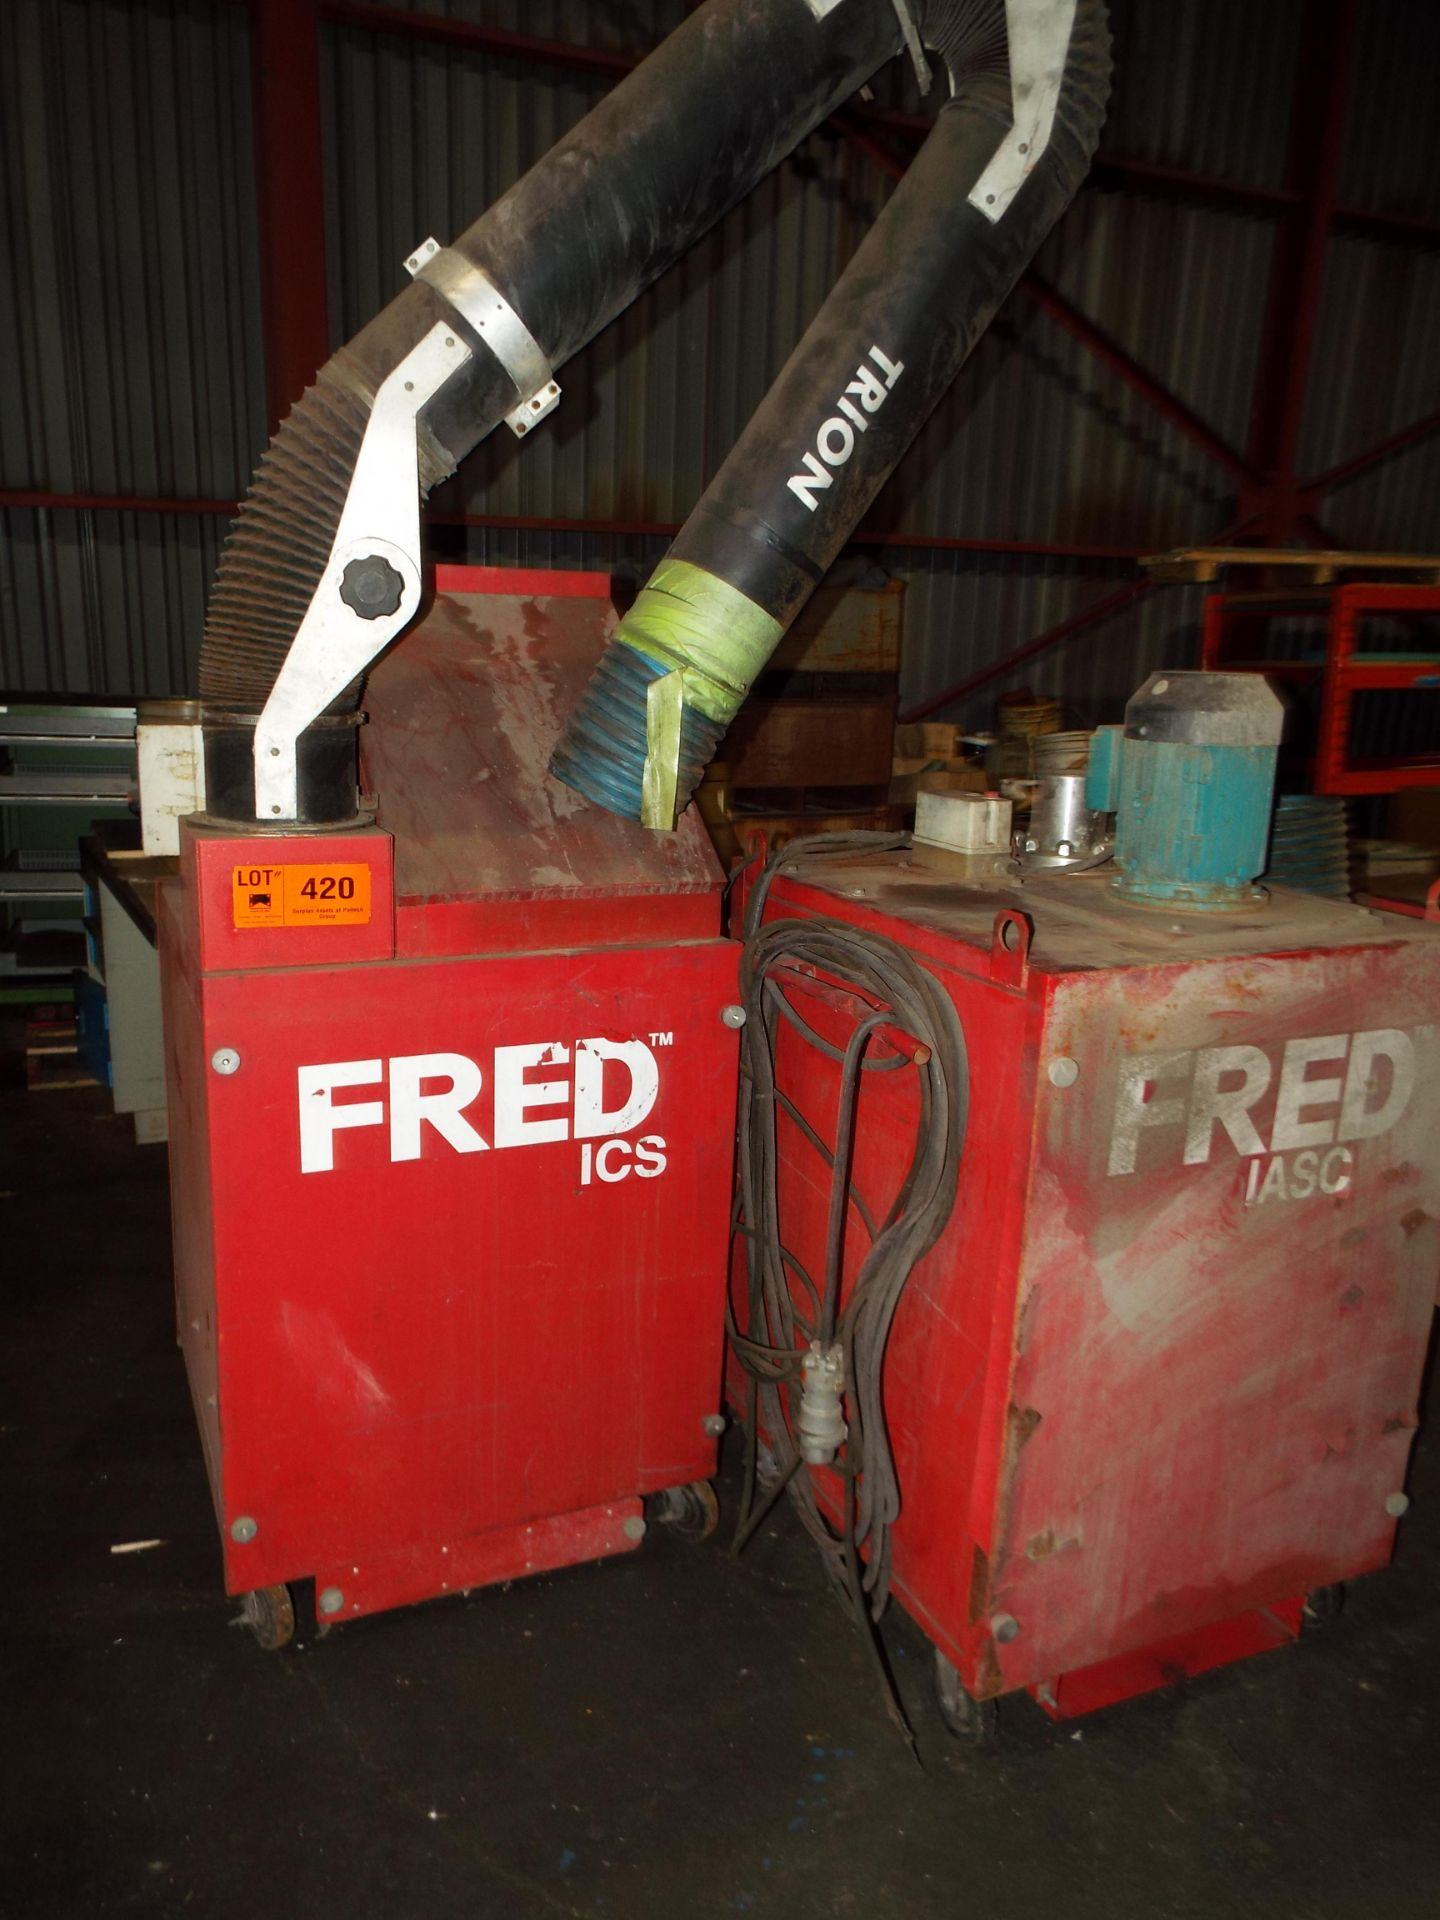 LOT/ (2) FRED PORTABLE FLUME EXTRACTORS (LOCATED AT 460 SIGNET DR, NORTH YORK, ON)